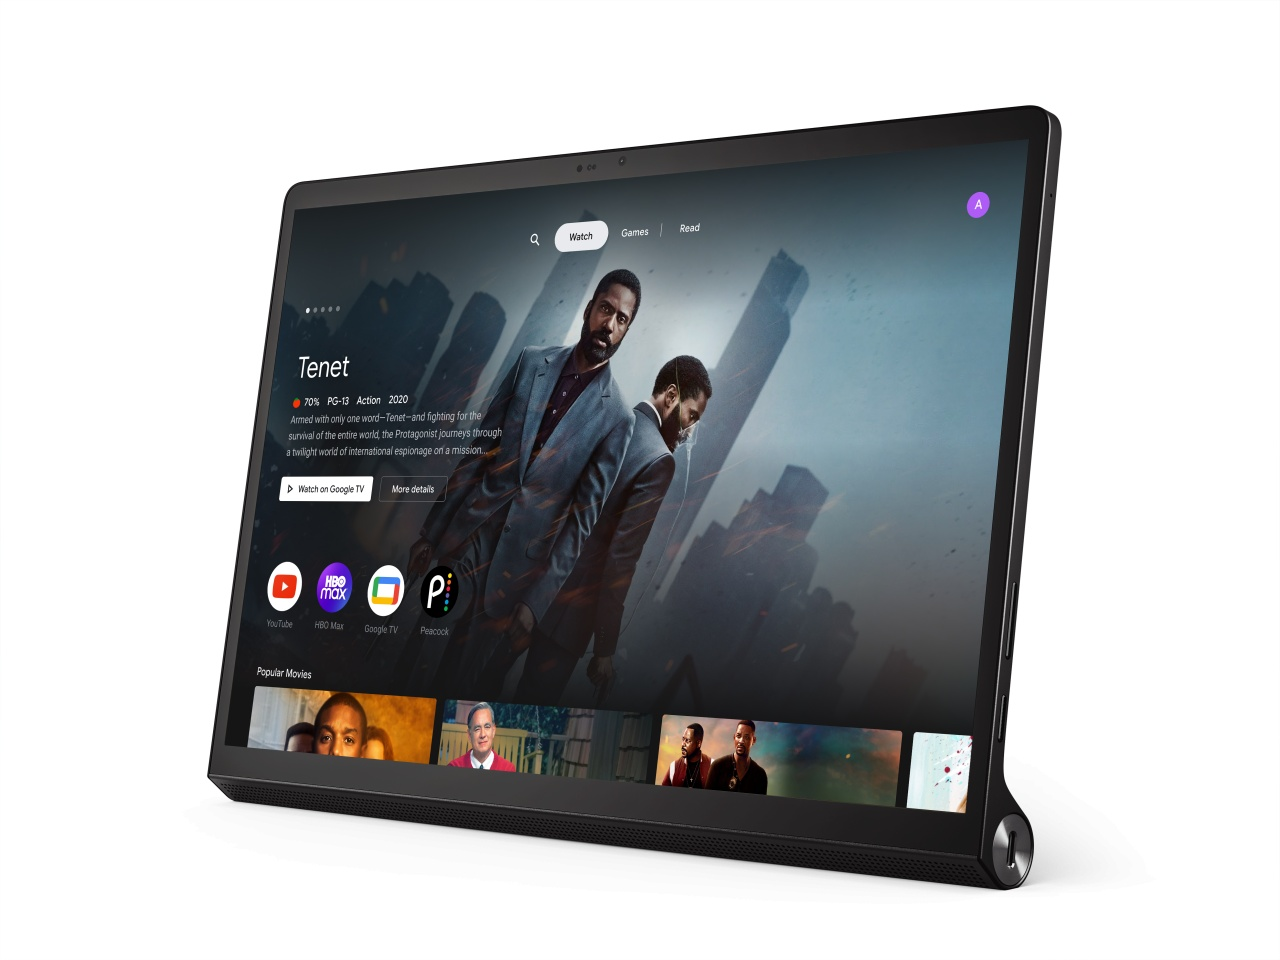 lenovo yoga tab 13 with entertainment space background